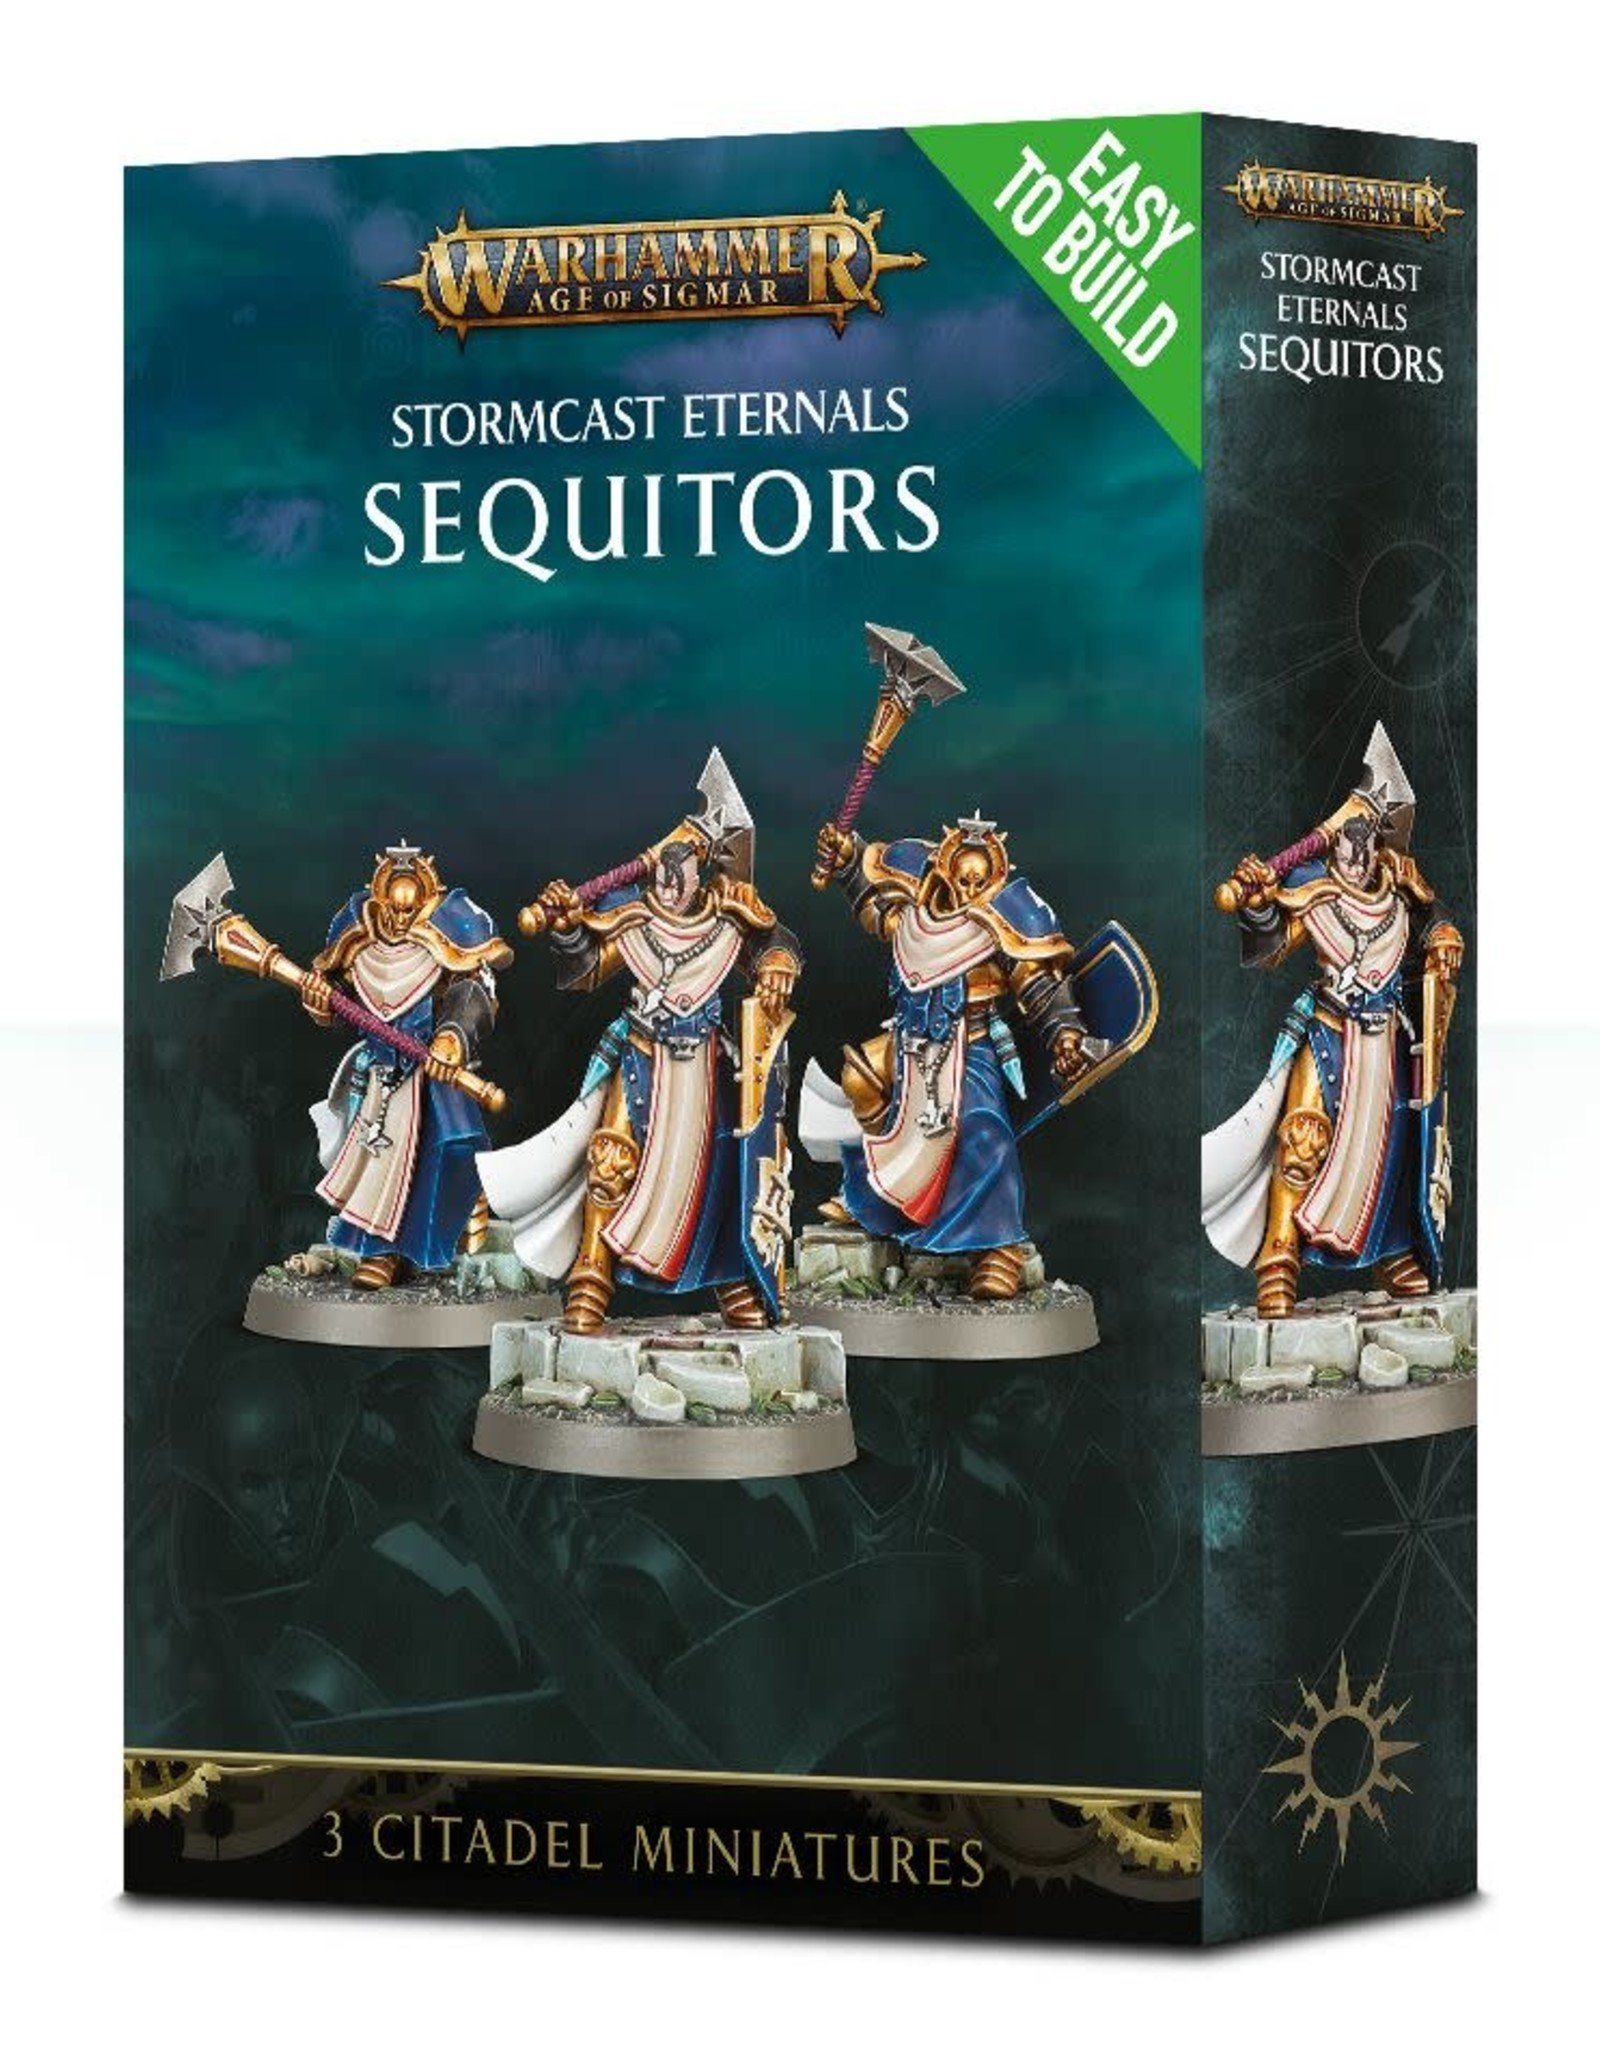 Age of Sigmar ETB: Stormcast Eternals Sequitors